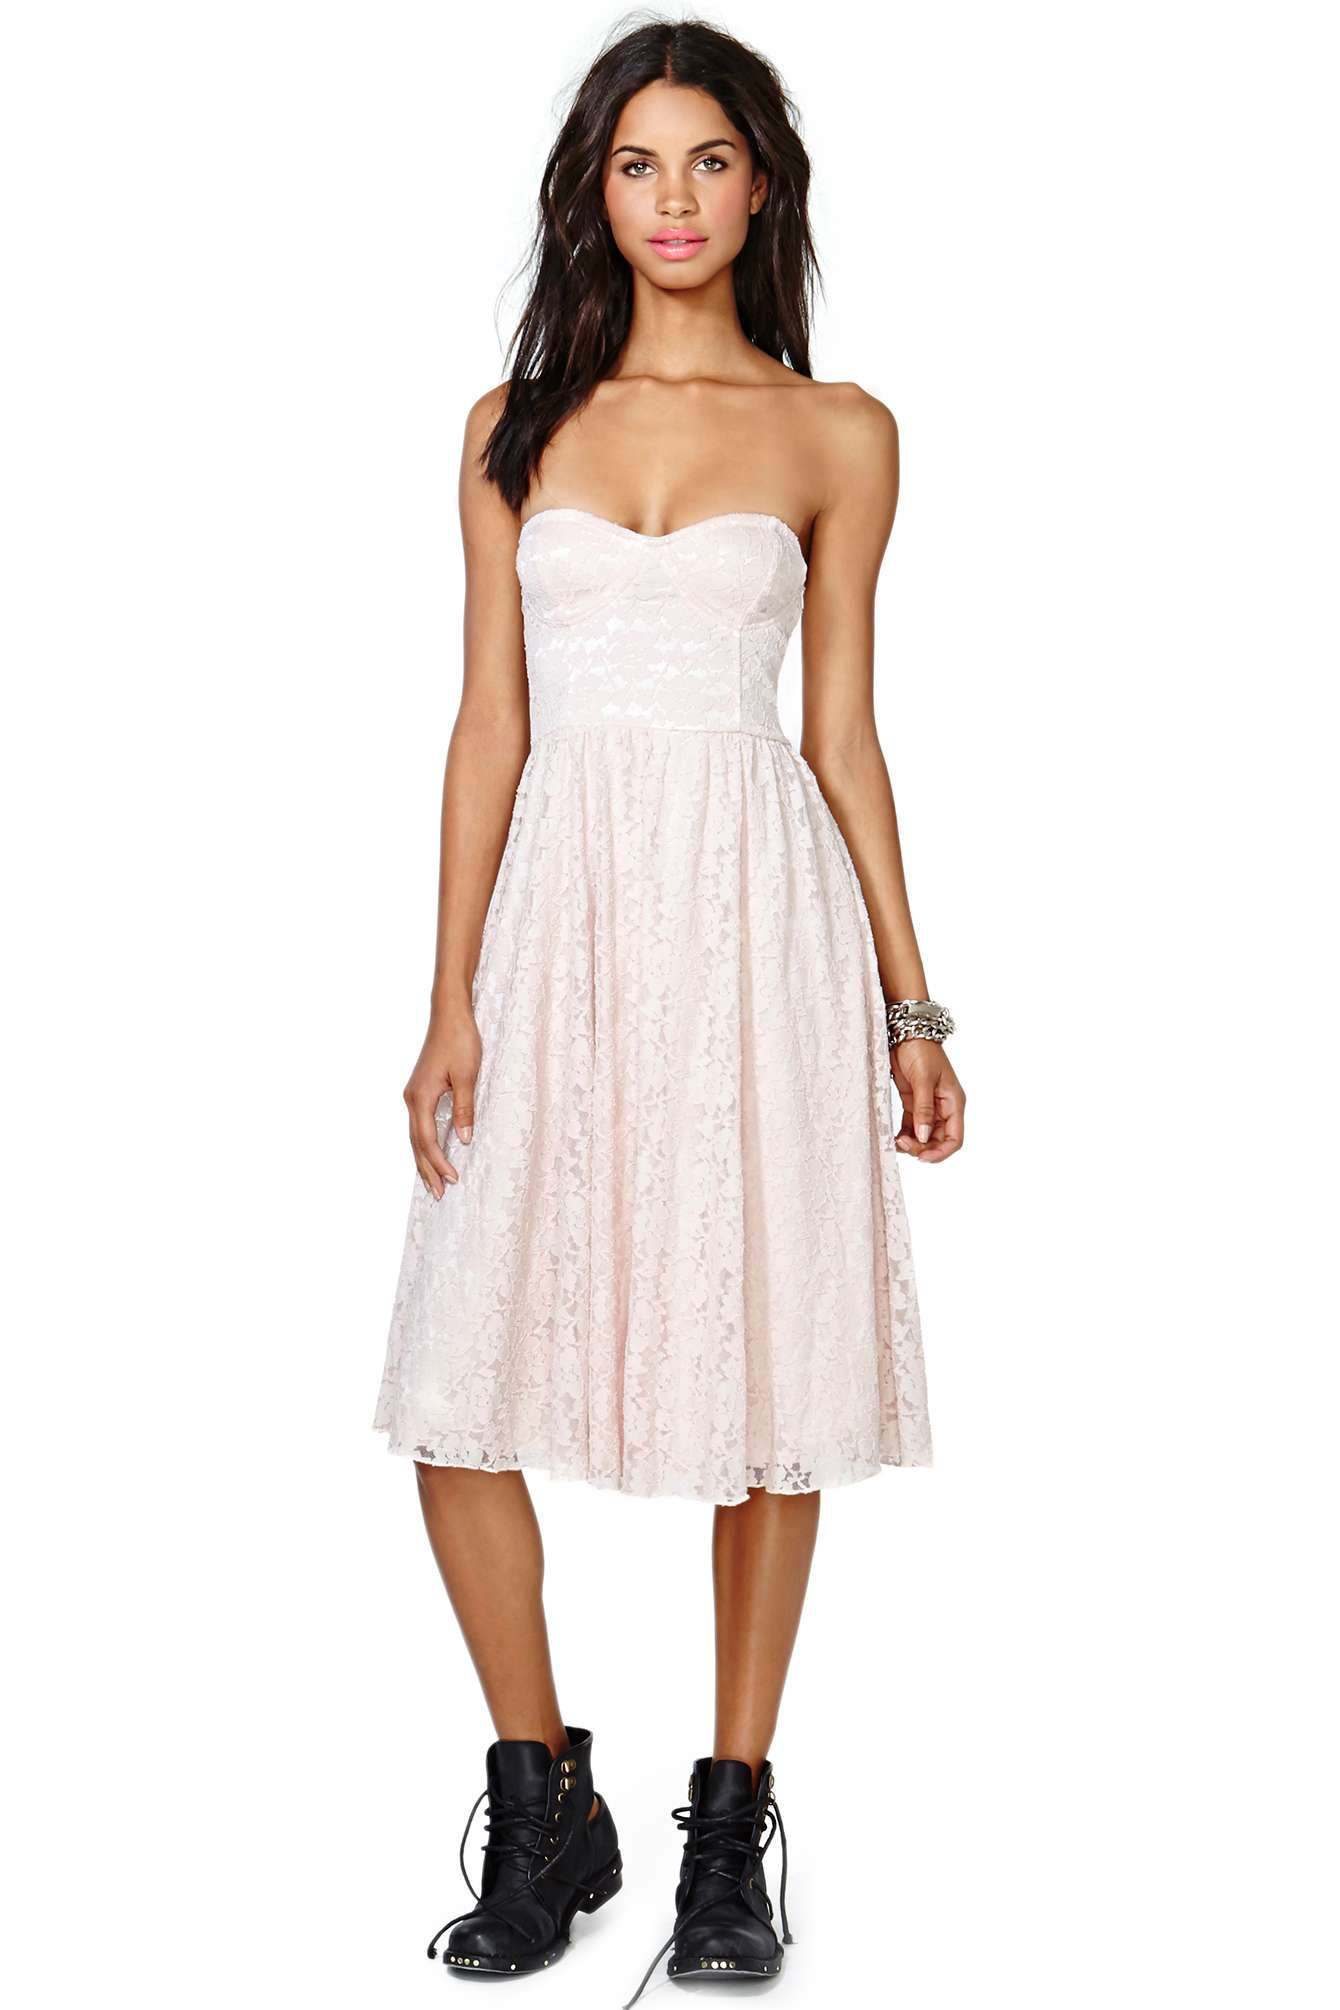 White Strapless Sundress - Dress images